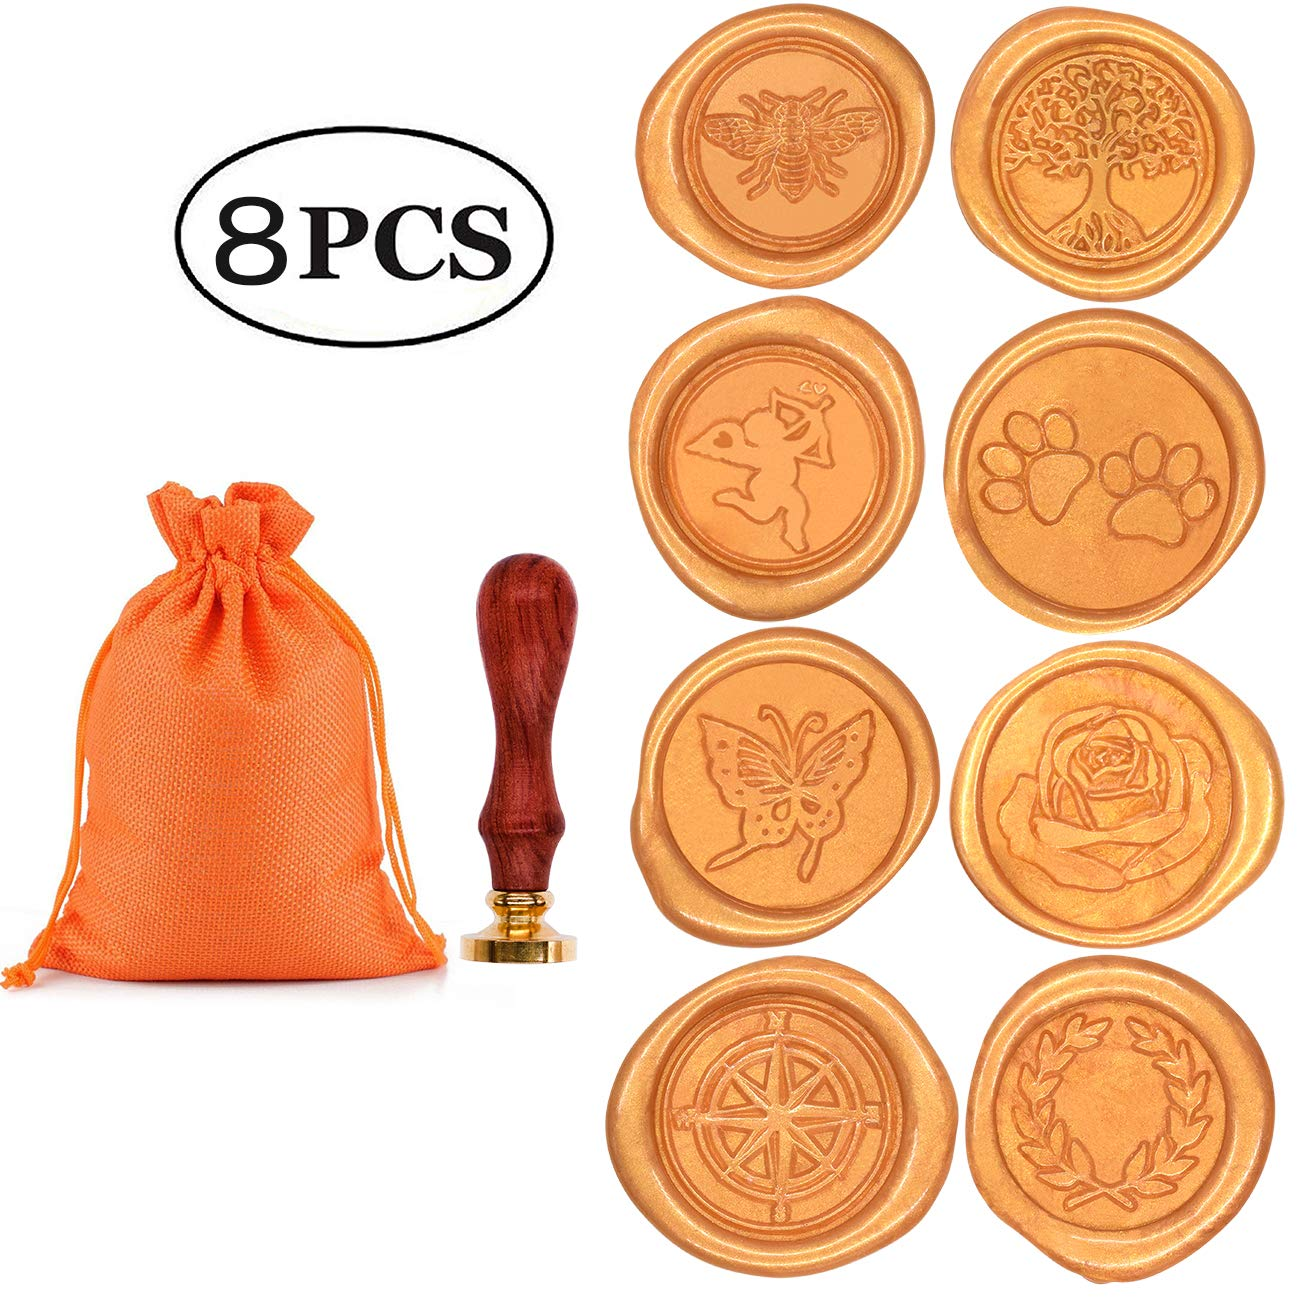 Wax Stamp Set, Aymayo 8 PCS Wax Seal Stamp Brass Heads and 1 PCS Wooden Handle, Arts & Crafts Vintage Adhesive Sealing Wax Stamp Kit with Gift Bag- Great Gift for a Friend or Yourself